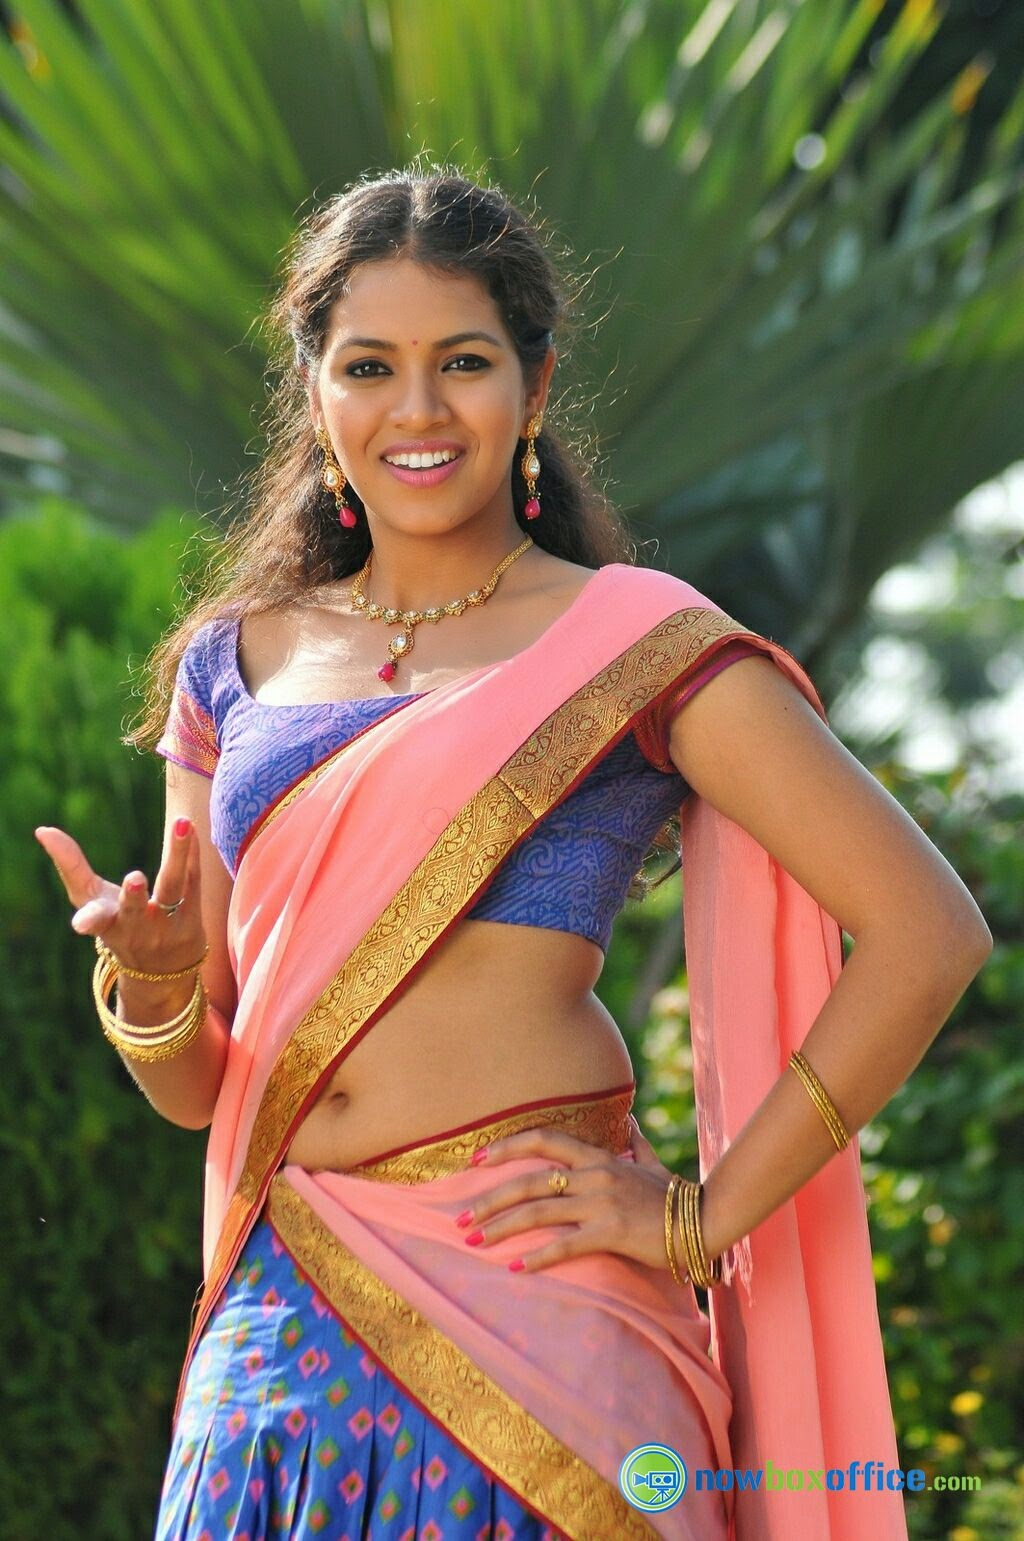 ACTRESS HOT IMAGES: Gowthami choudary hot navel pics in ...